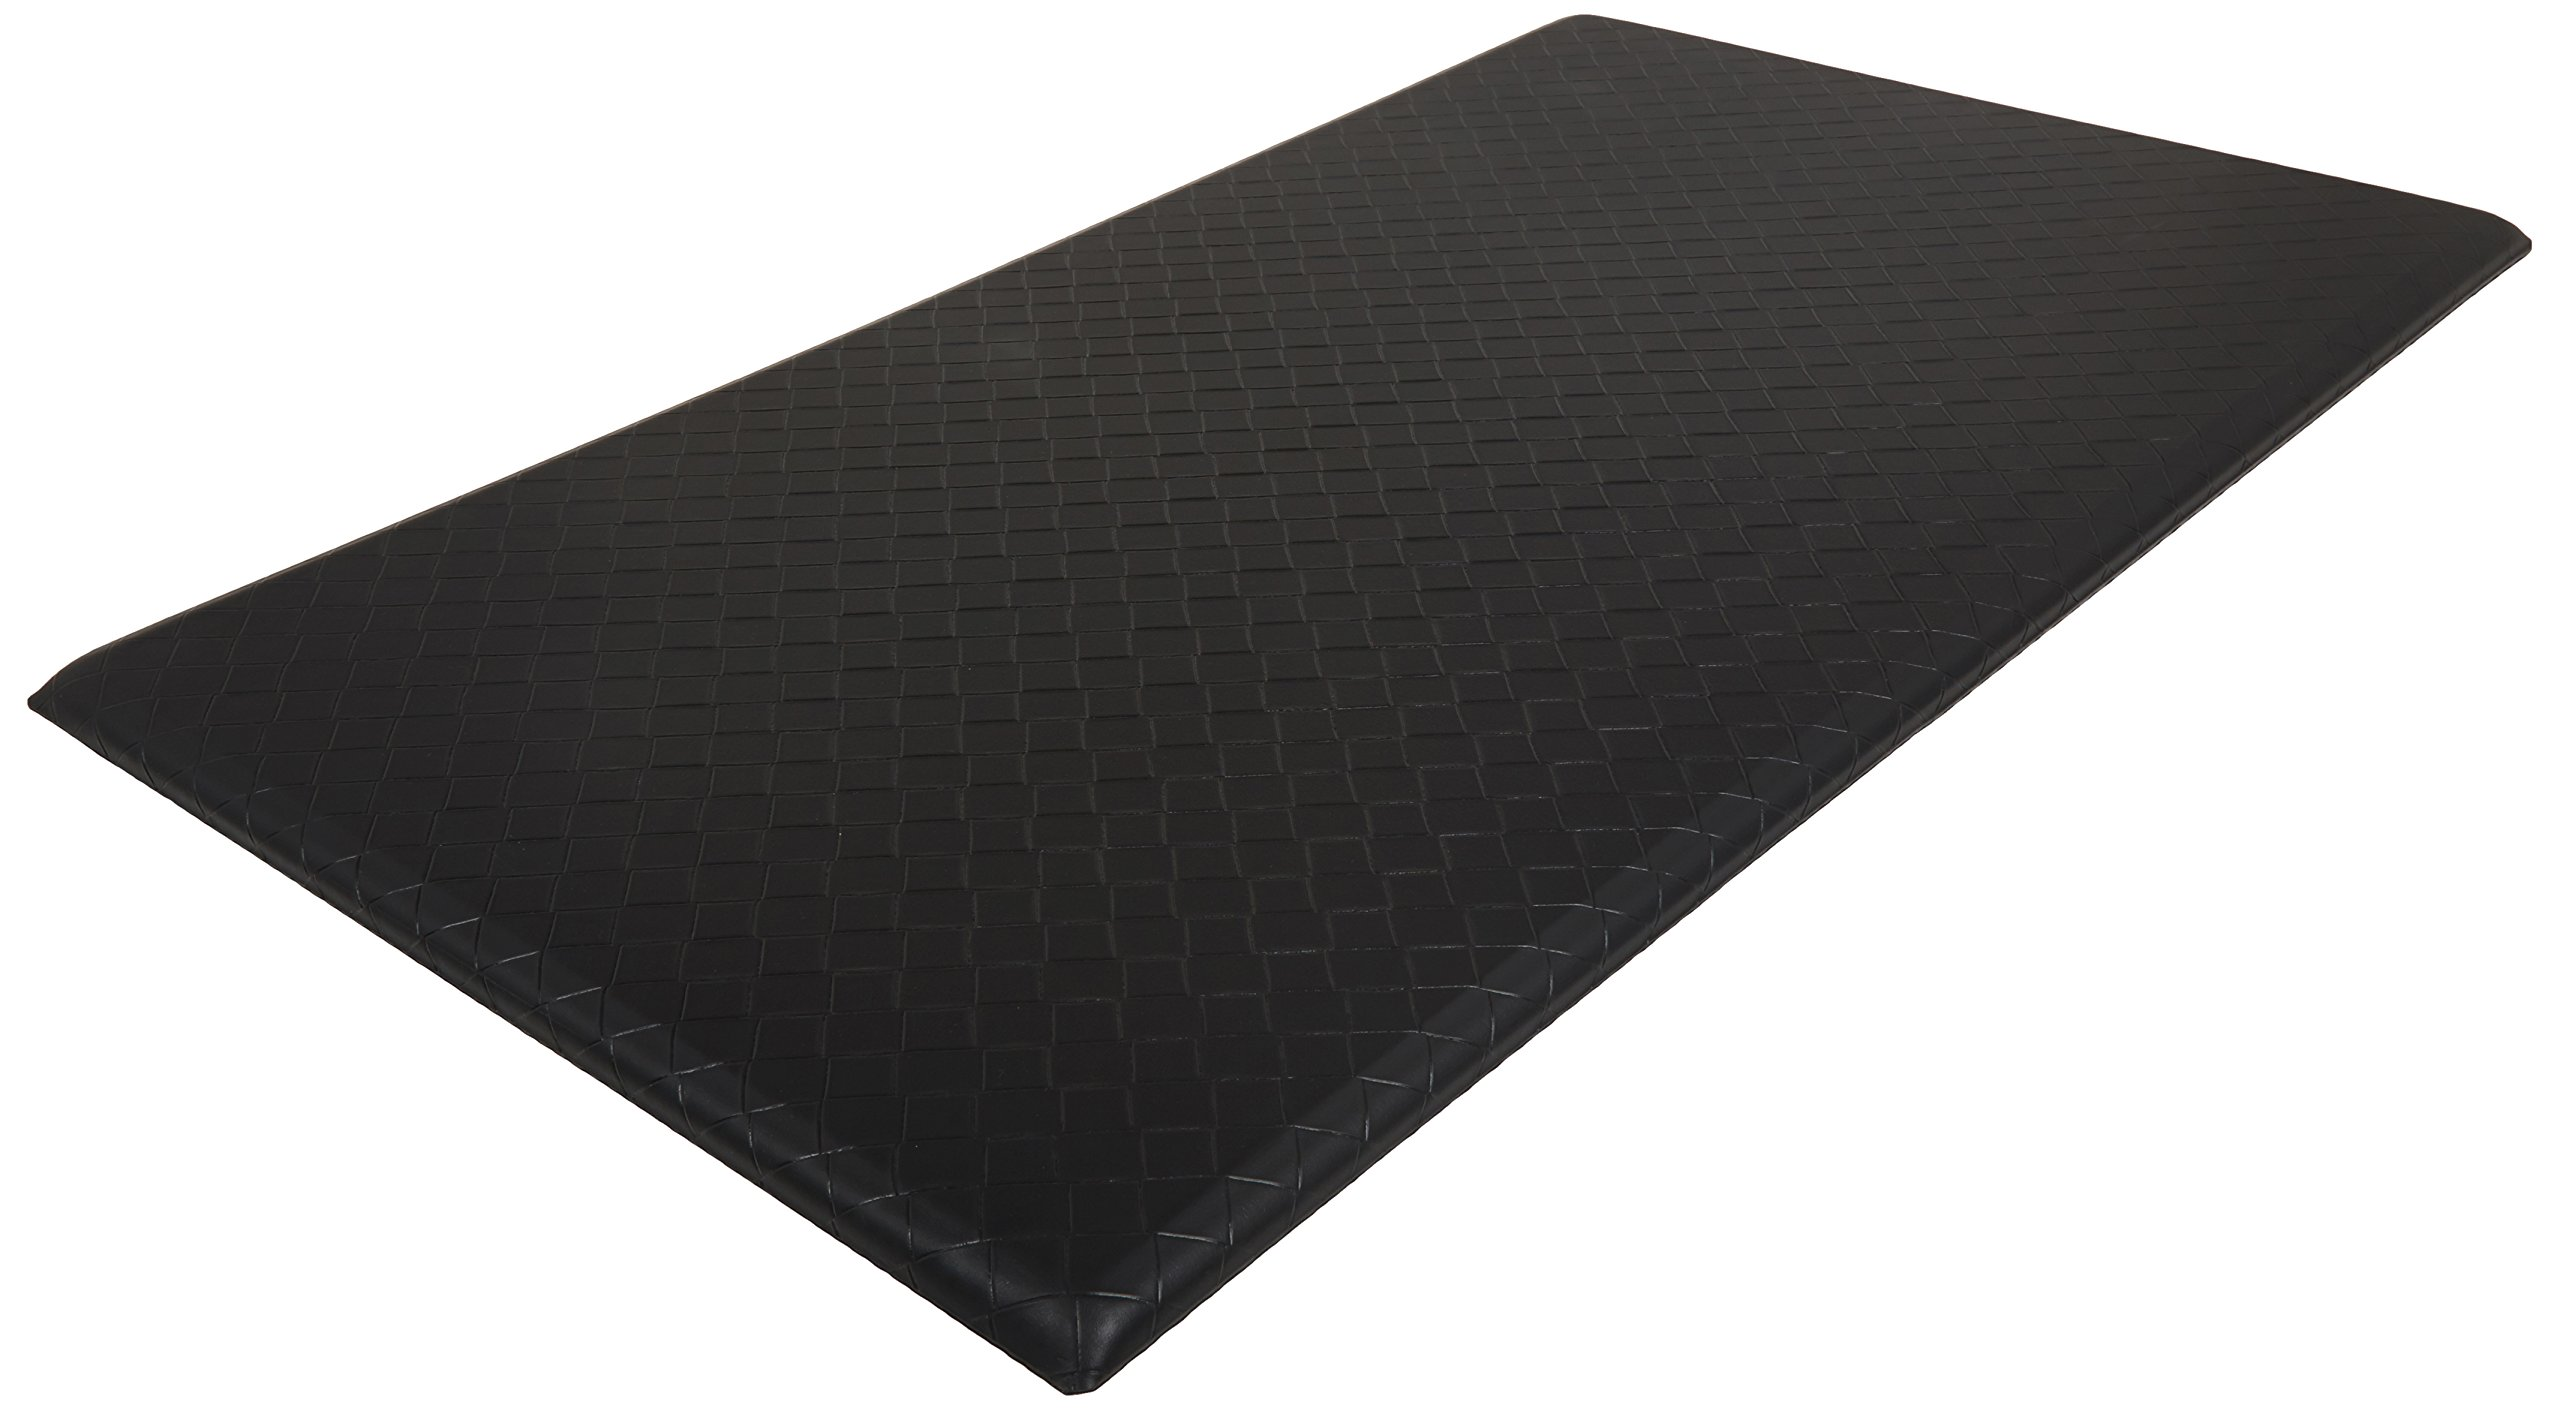 AmazonBasics Premium Anti-Fatigue Standing Comfort Mat for Home and Office - 20x36-Inches, Black by AmazonBasics (Image #3)